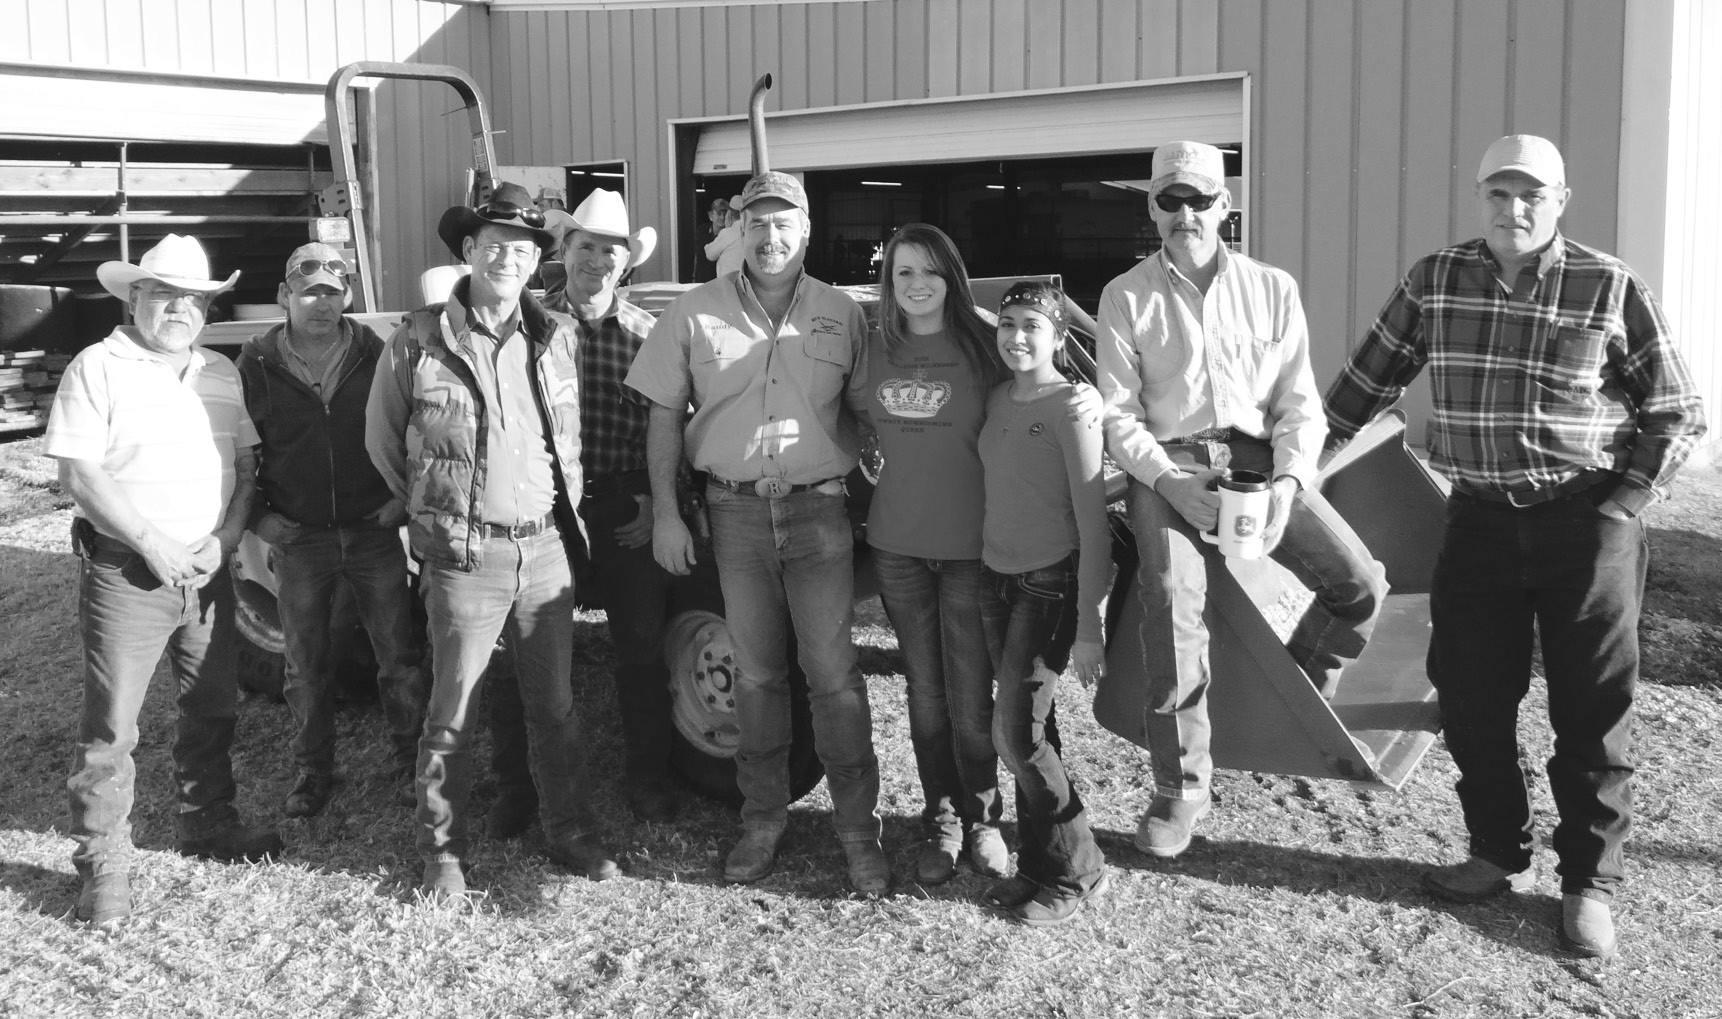 The Pleasanton Young Farmers will have their annual equipment auction this Saturday, January 26 at the Atascosa County Show Barn. Inviting buyers and sellers are: Abel Flores, Delbert West, Robert Earl Wood, Michael Korus, Randy Rice, Emalee Rice, Sabrina Salazar, Allen Janecek and Charles Novak. Large items will be auctioned off at 10 a.m. Consignments are still being accepted. For more information, please see the advertisement on page 7A.